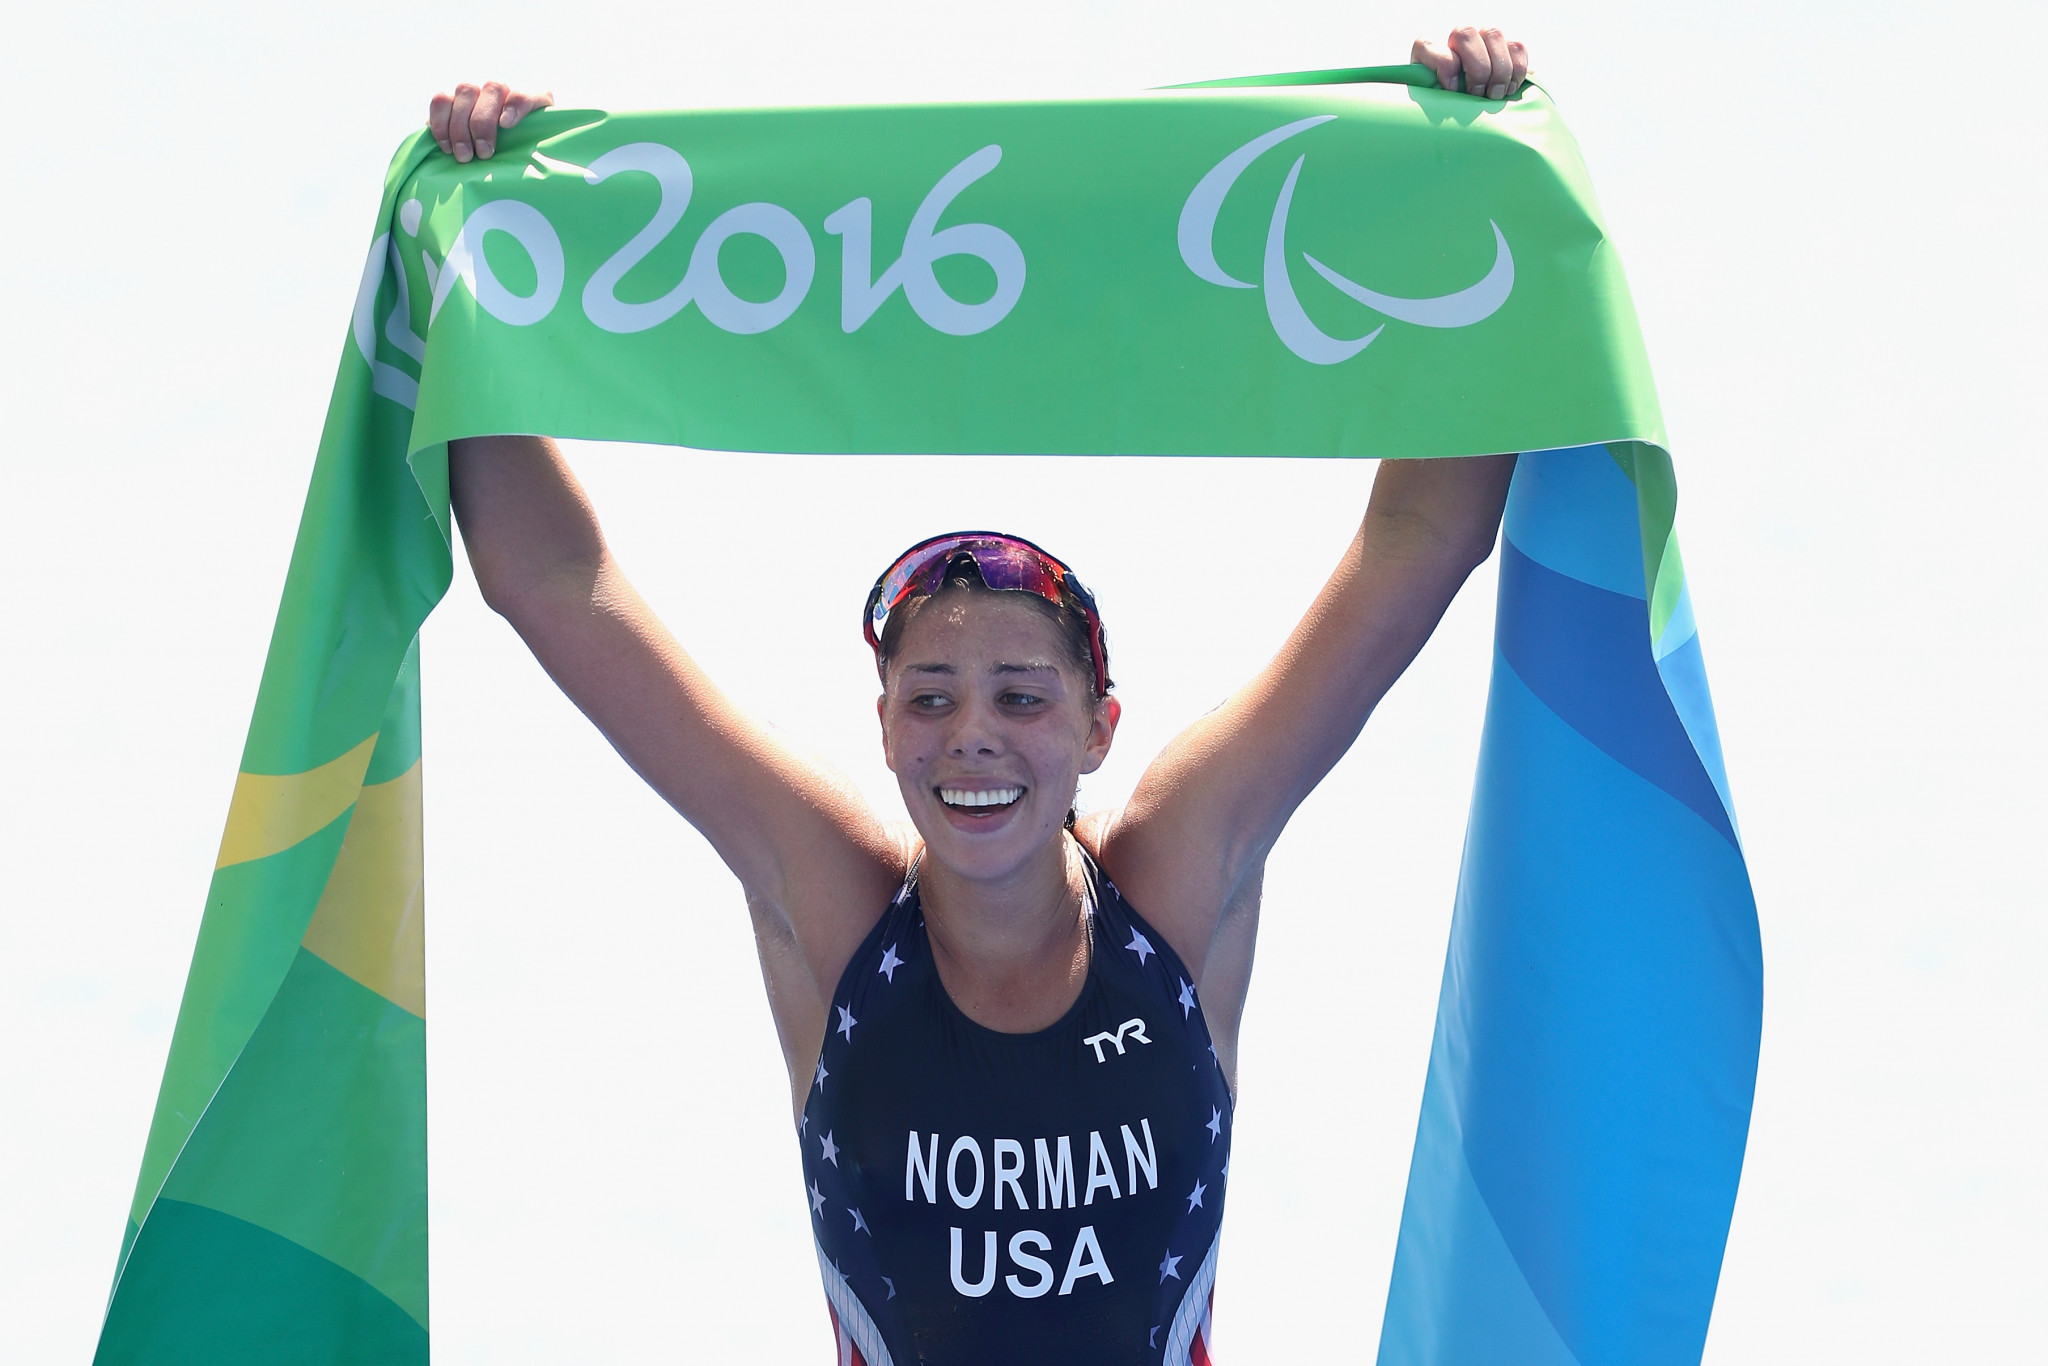 US Triathlon set sights on long term goals beyond Tokyo 2020 as they strive for glory at Paris 2024 and Los Angeles 2028